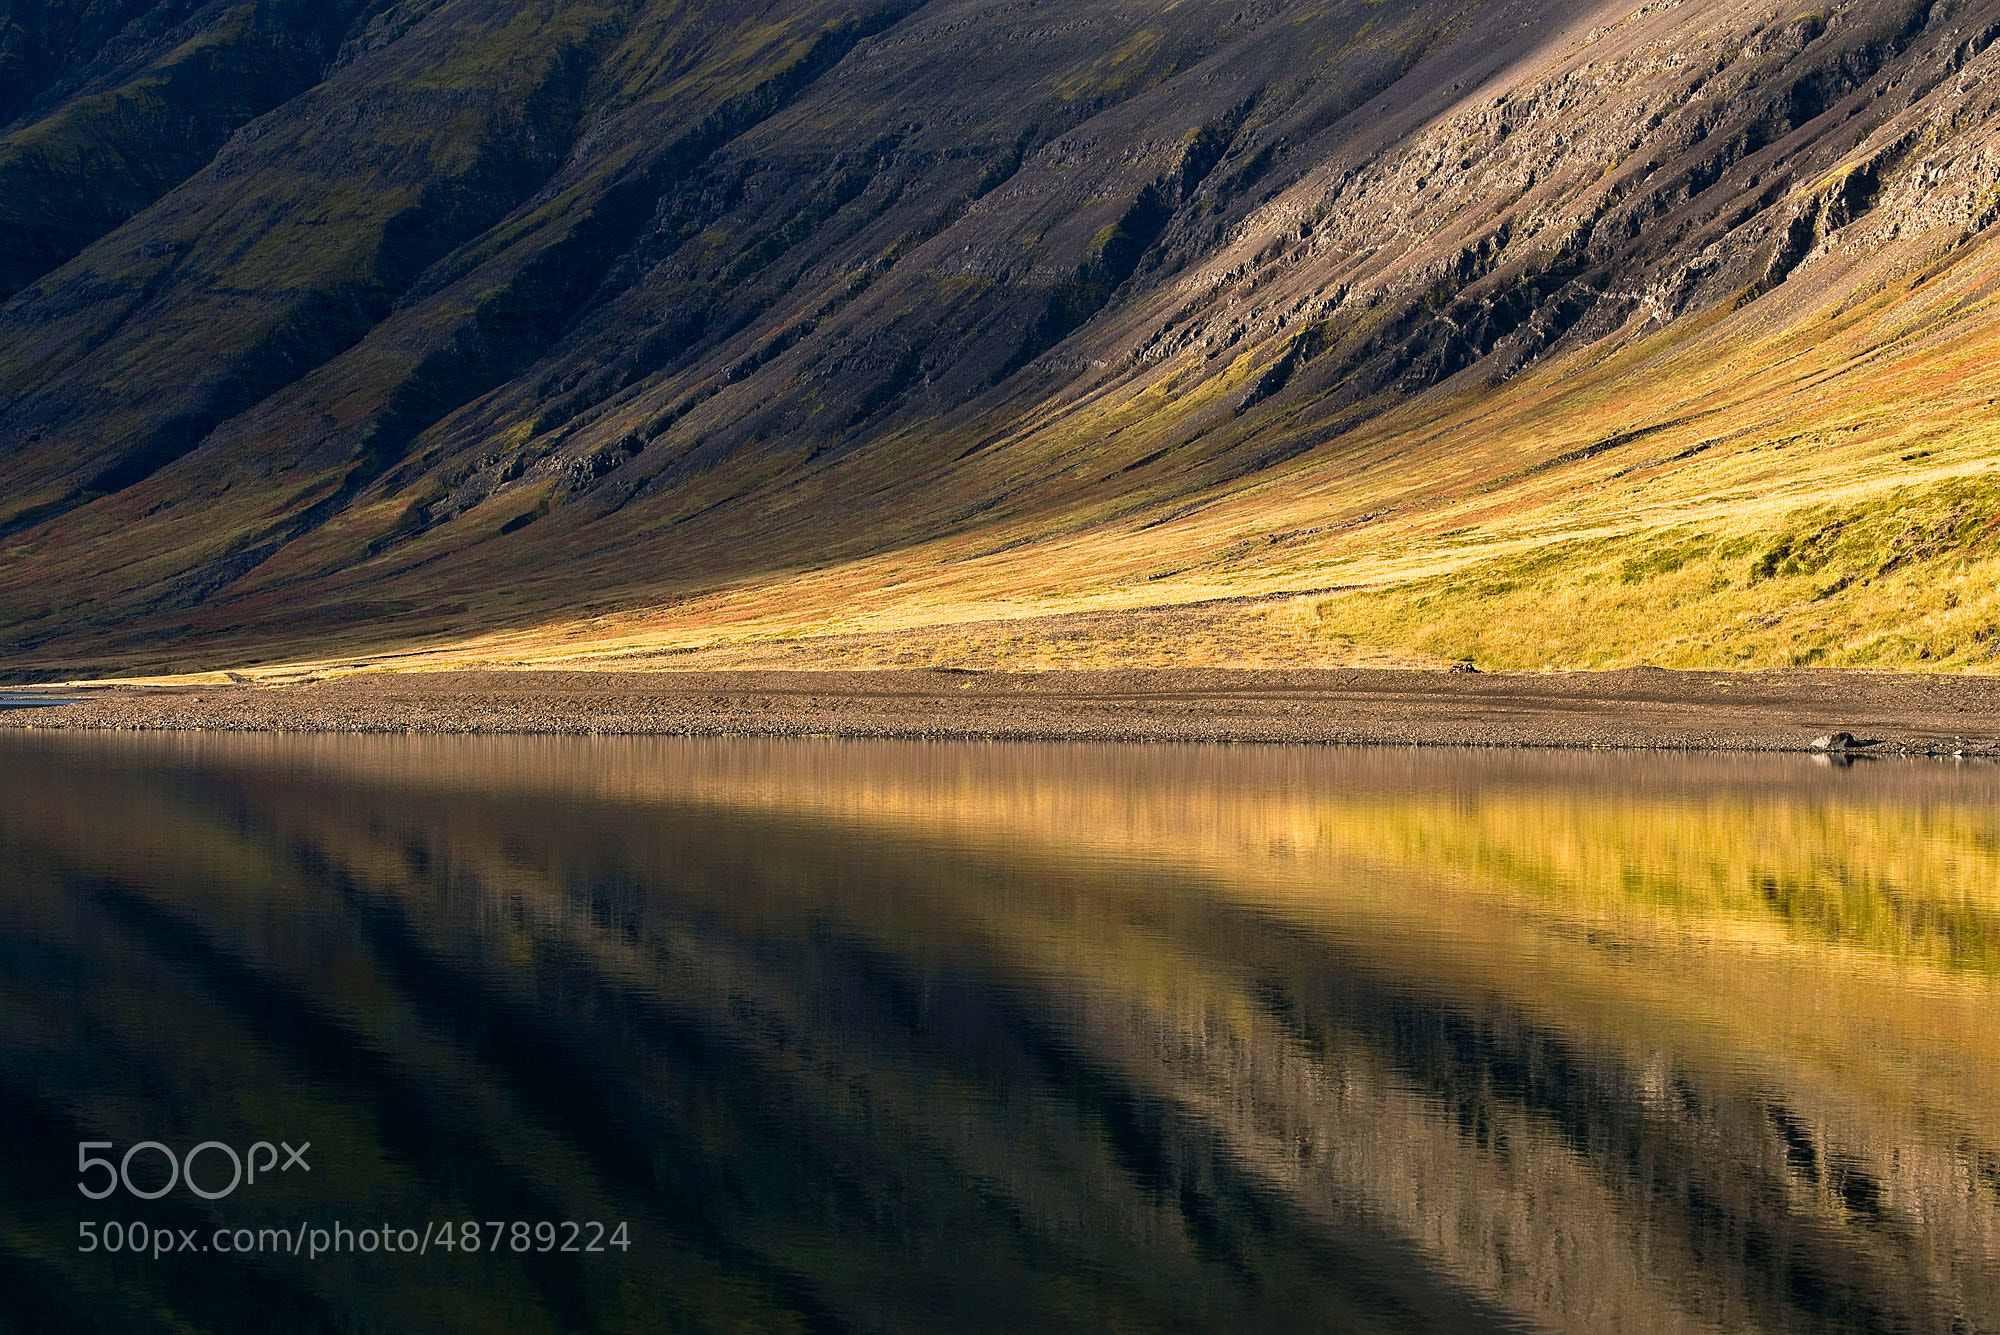 Photograph Just Relax by Daniel Bosma on 500px